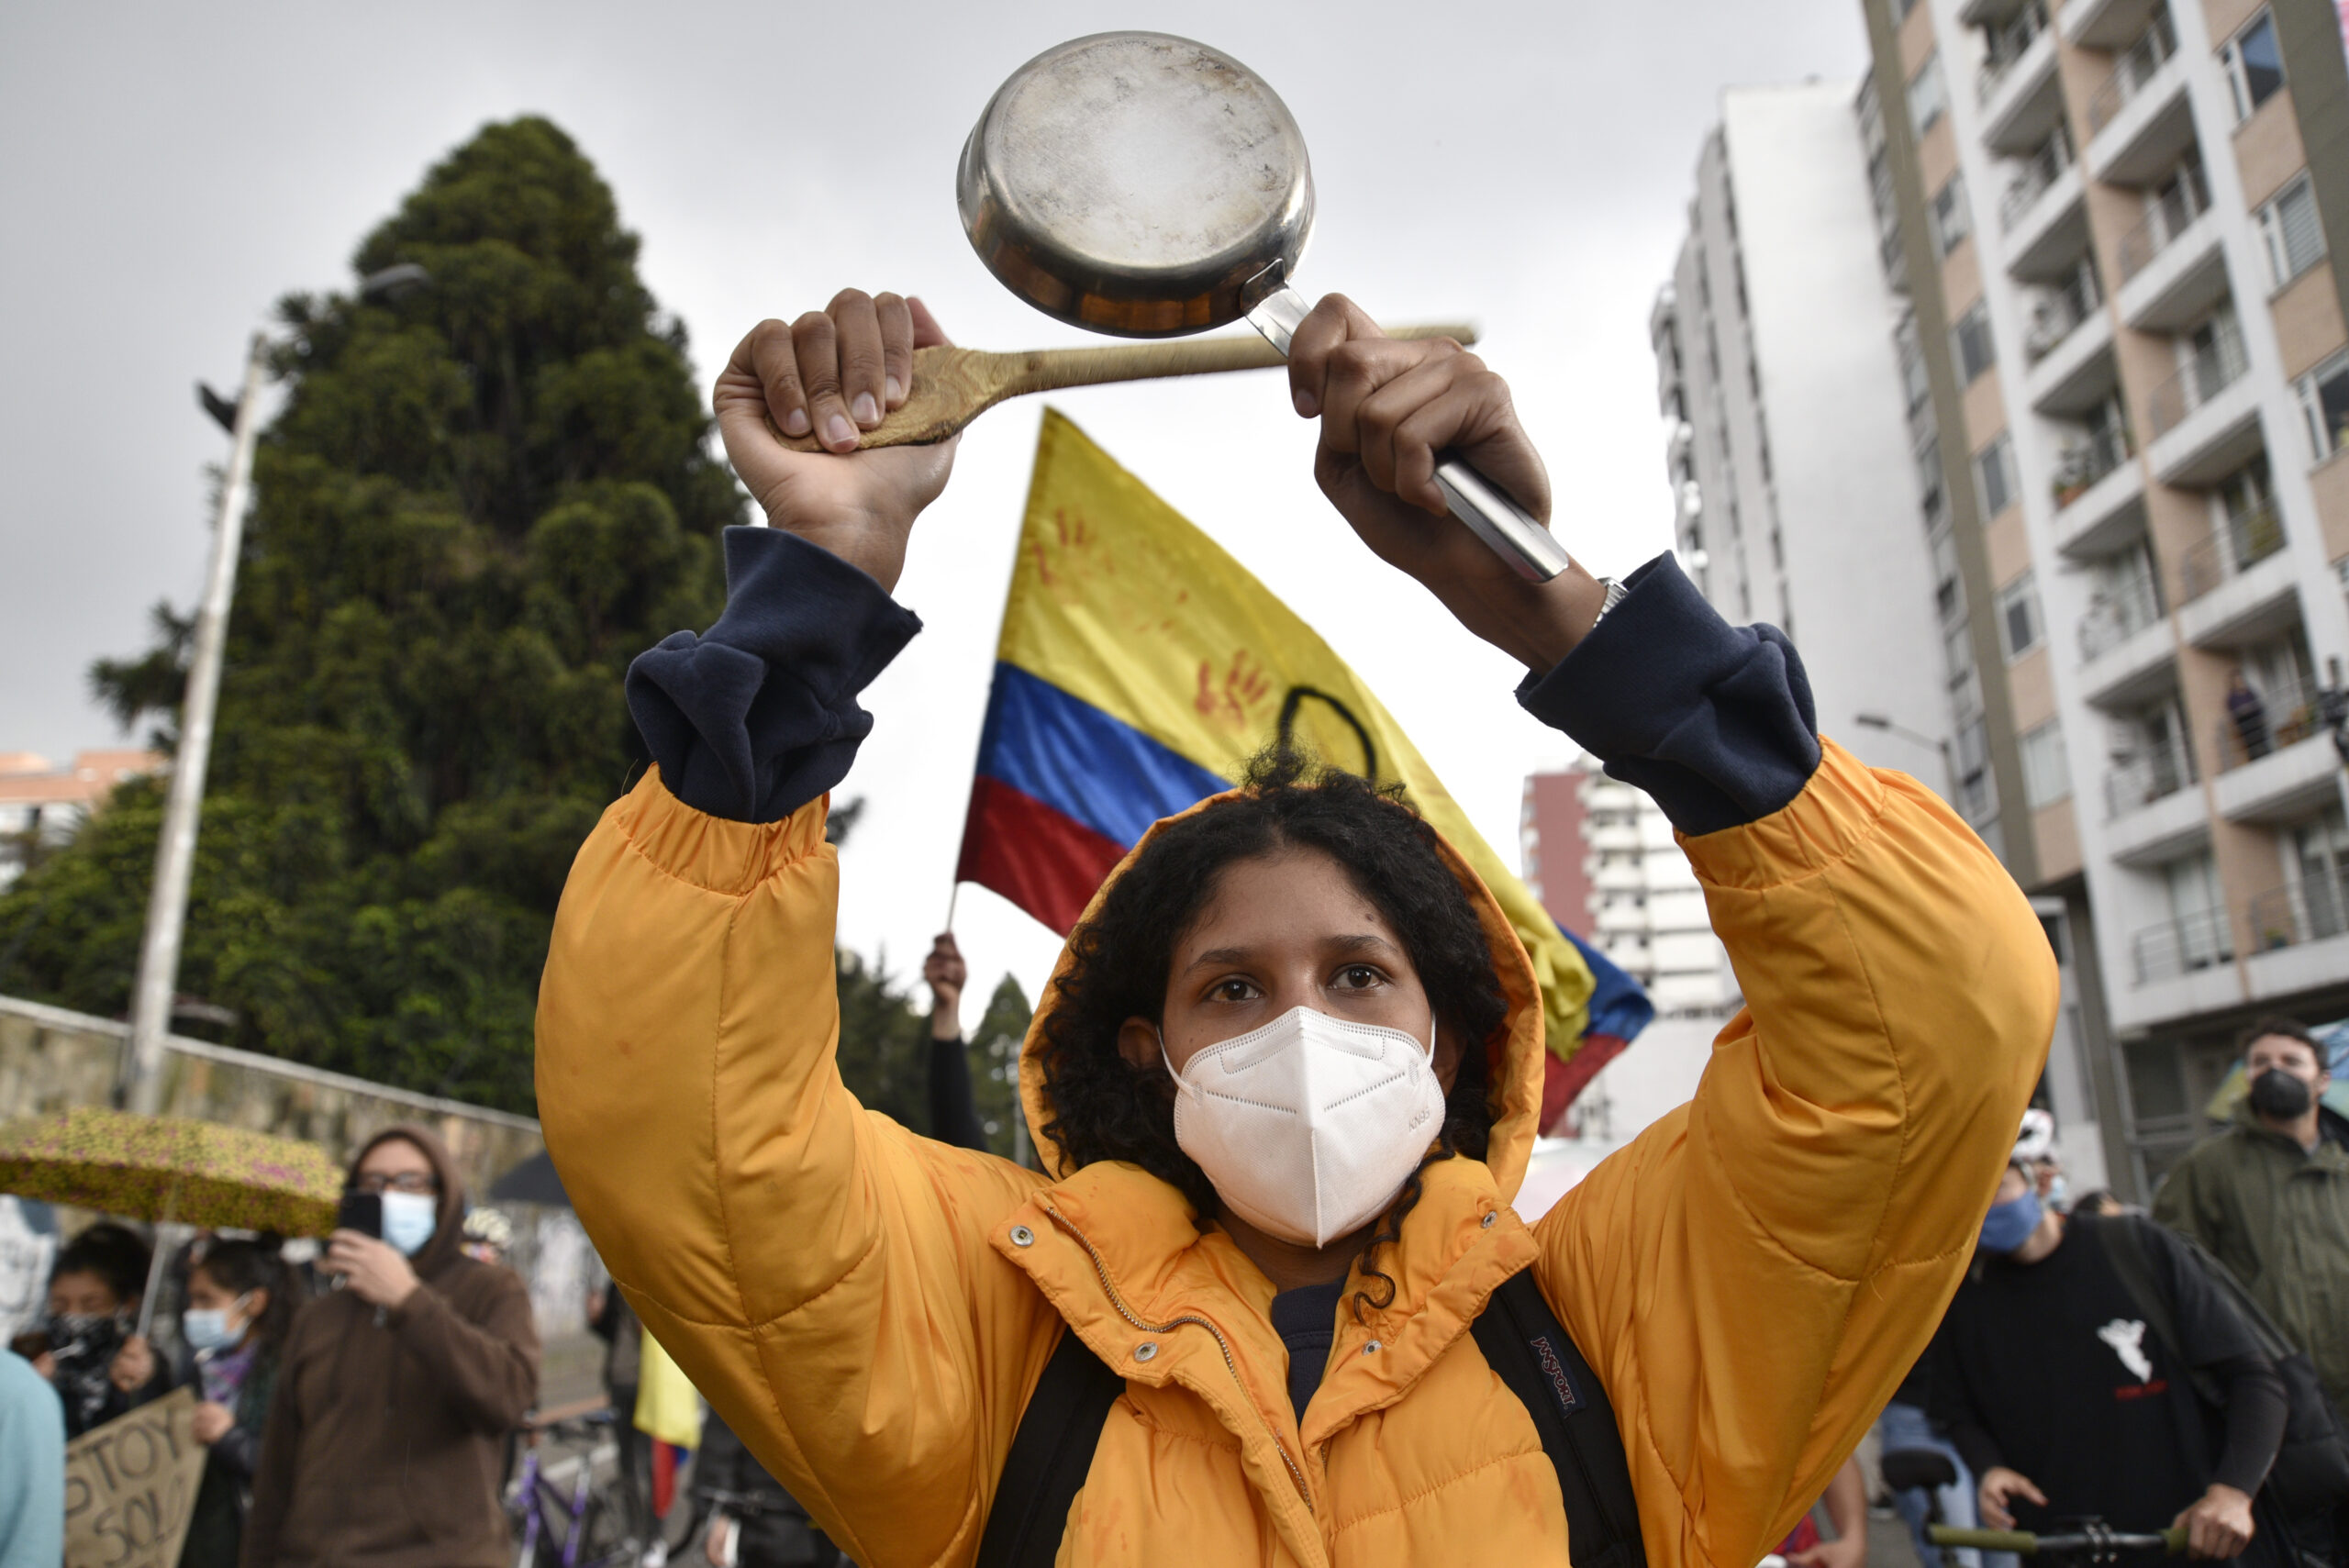 Colombia: Amnesty International denounces militarized response and police repression of demonstrations